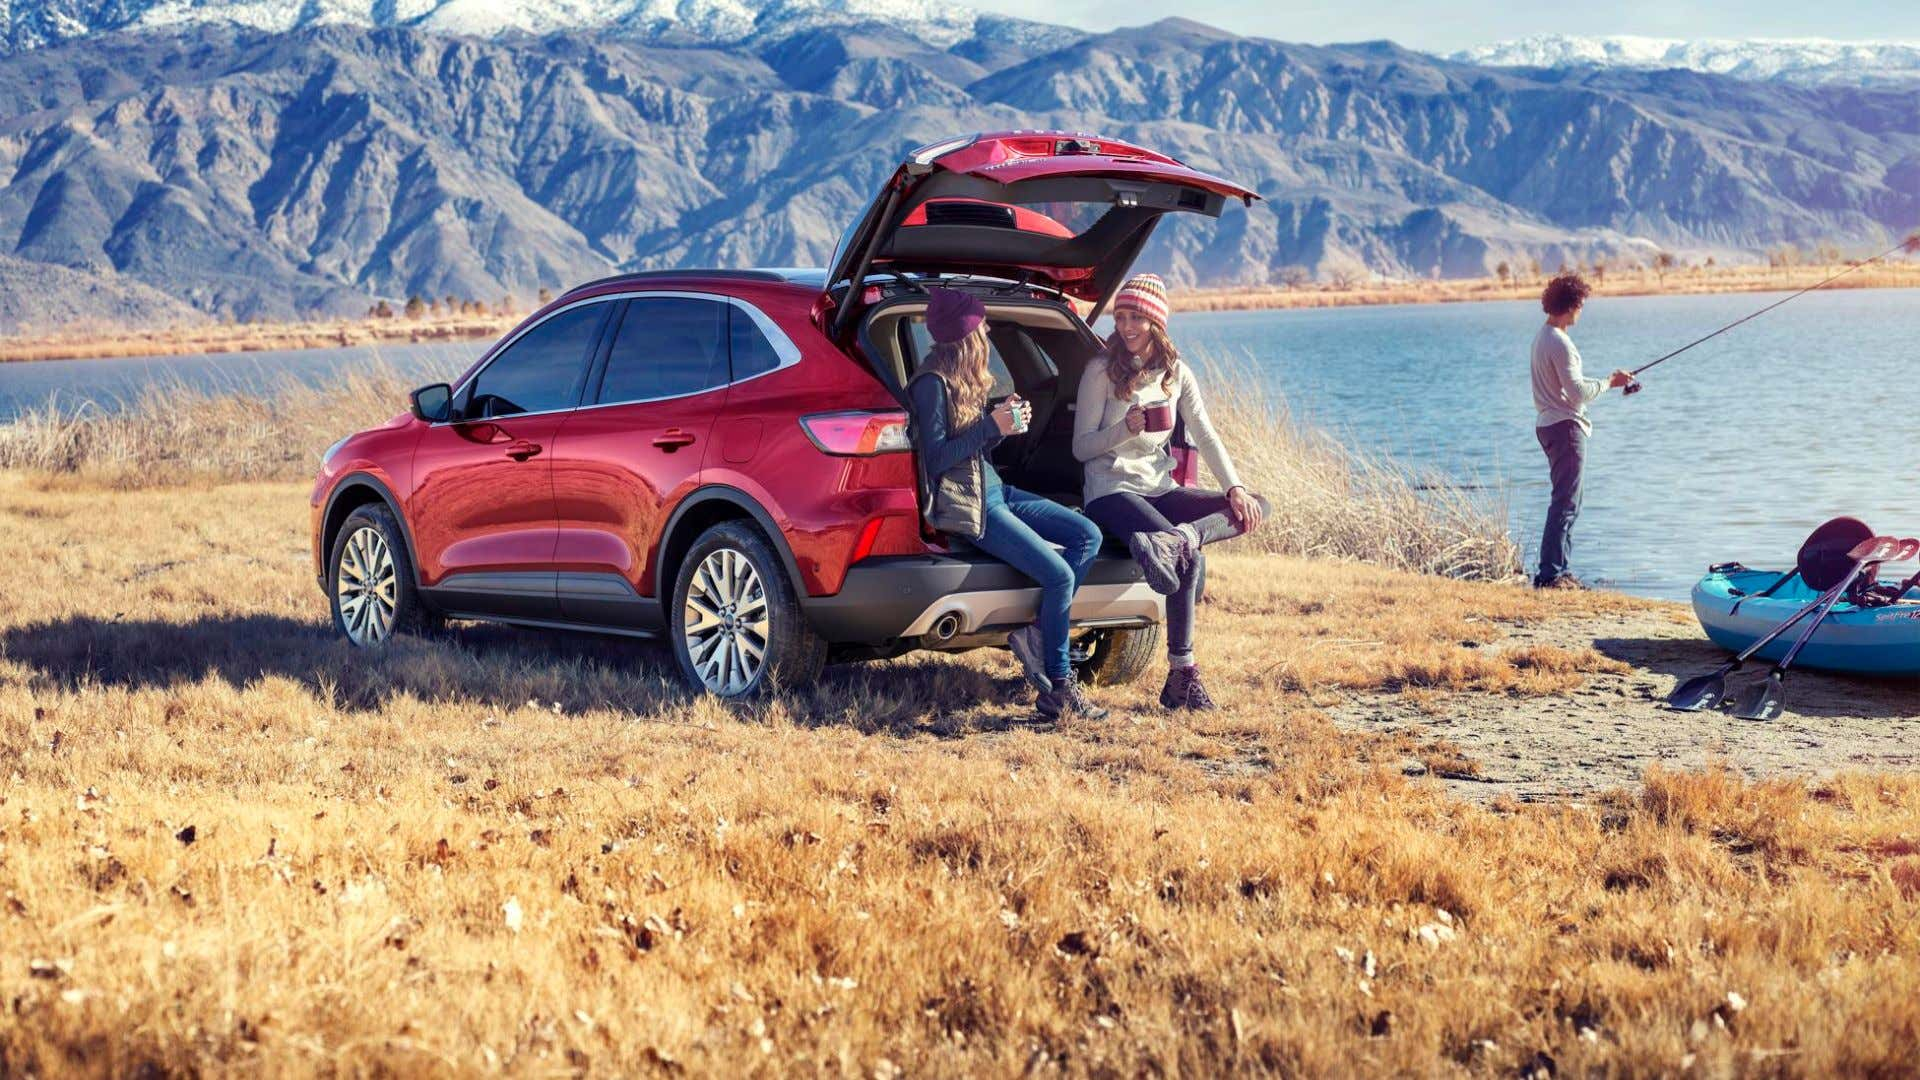 A small encampment with a new Ford Escape.